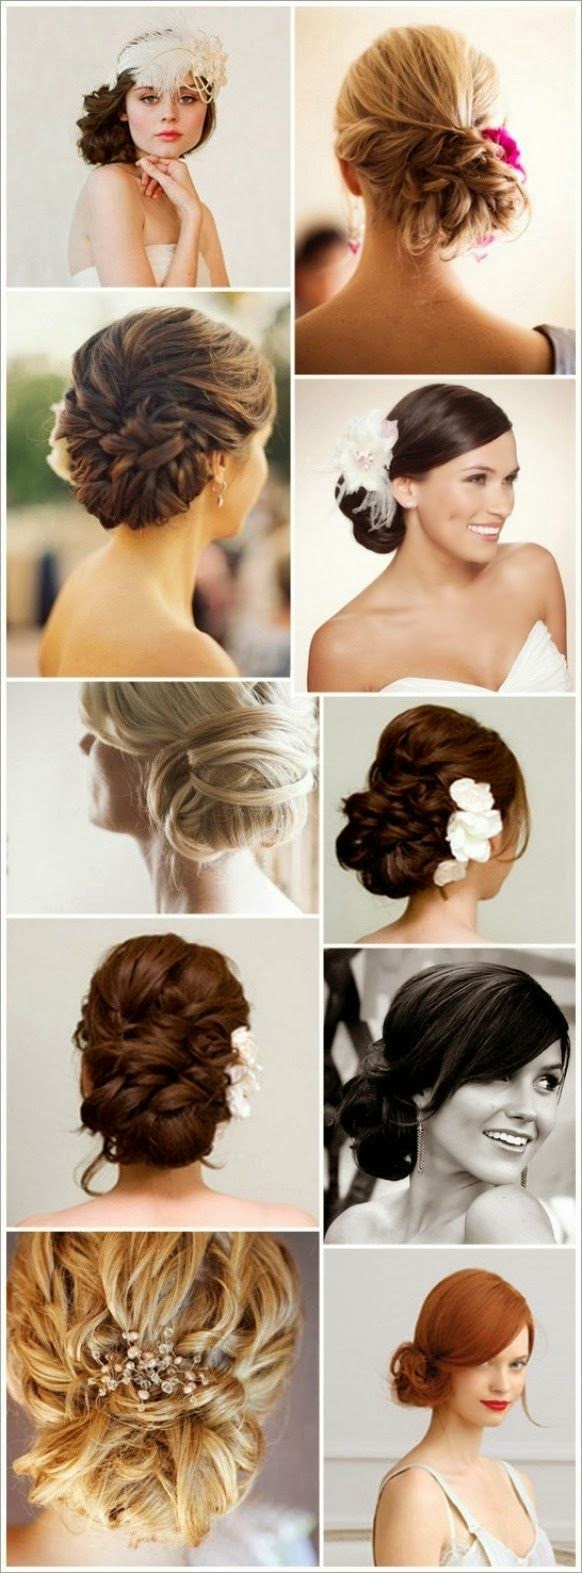 fabulous ways to braid your hair design for 2014